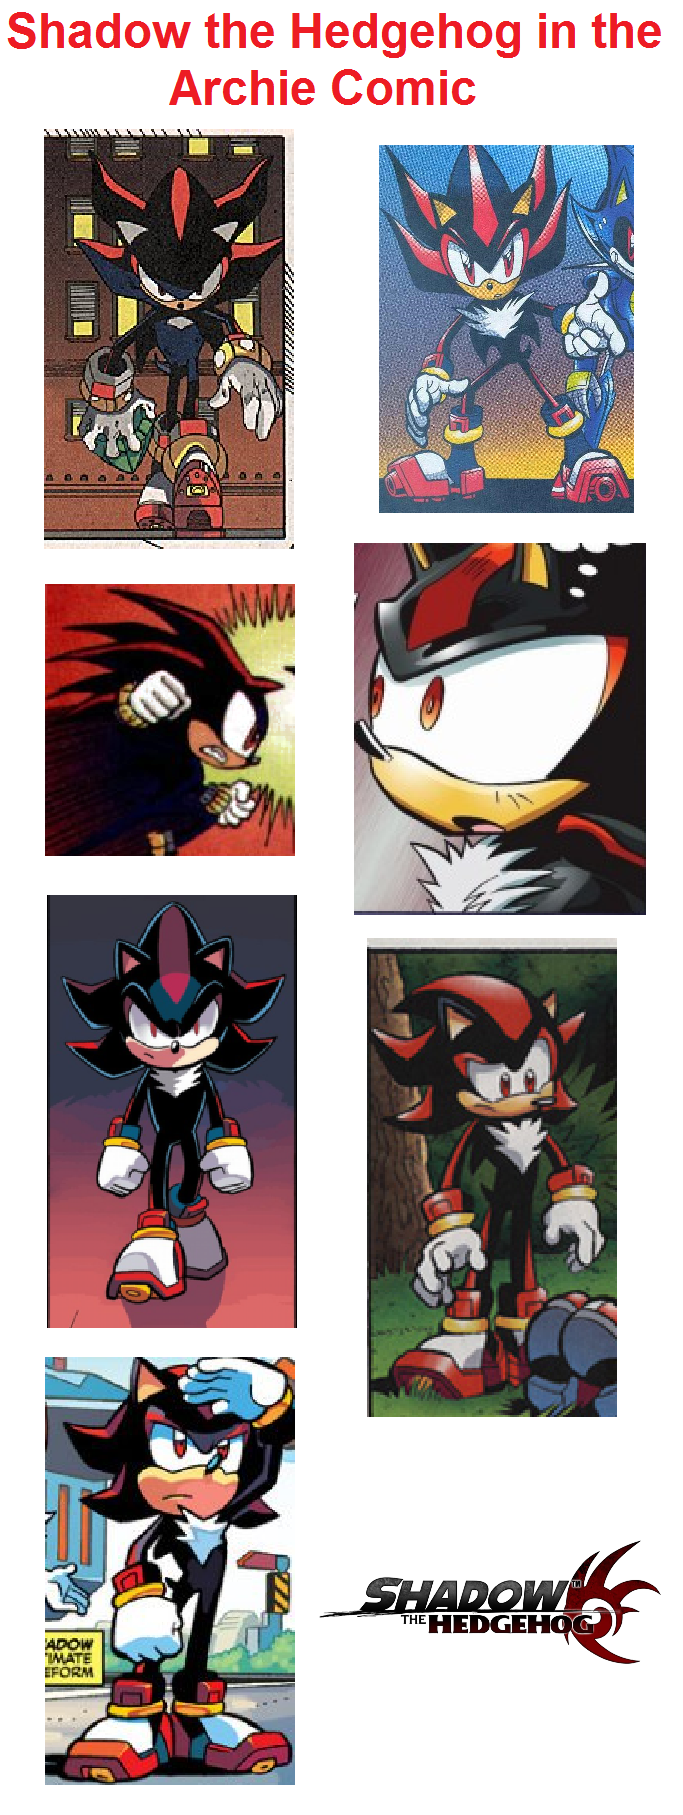 Shadow the Hedgehog in Archie Comic